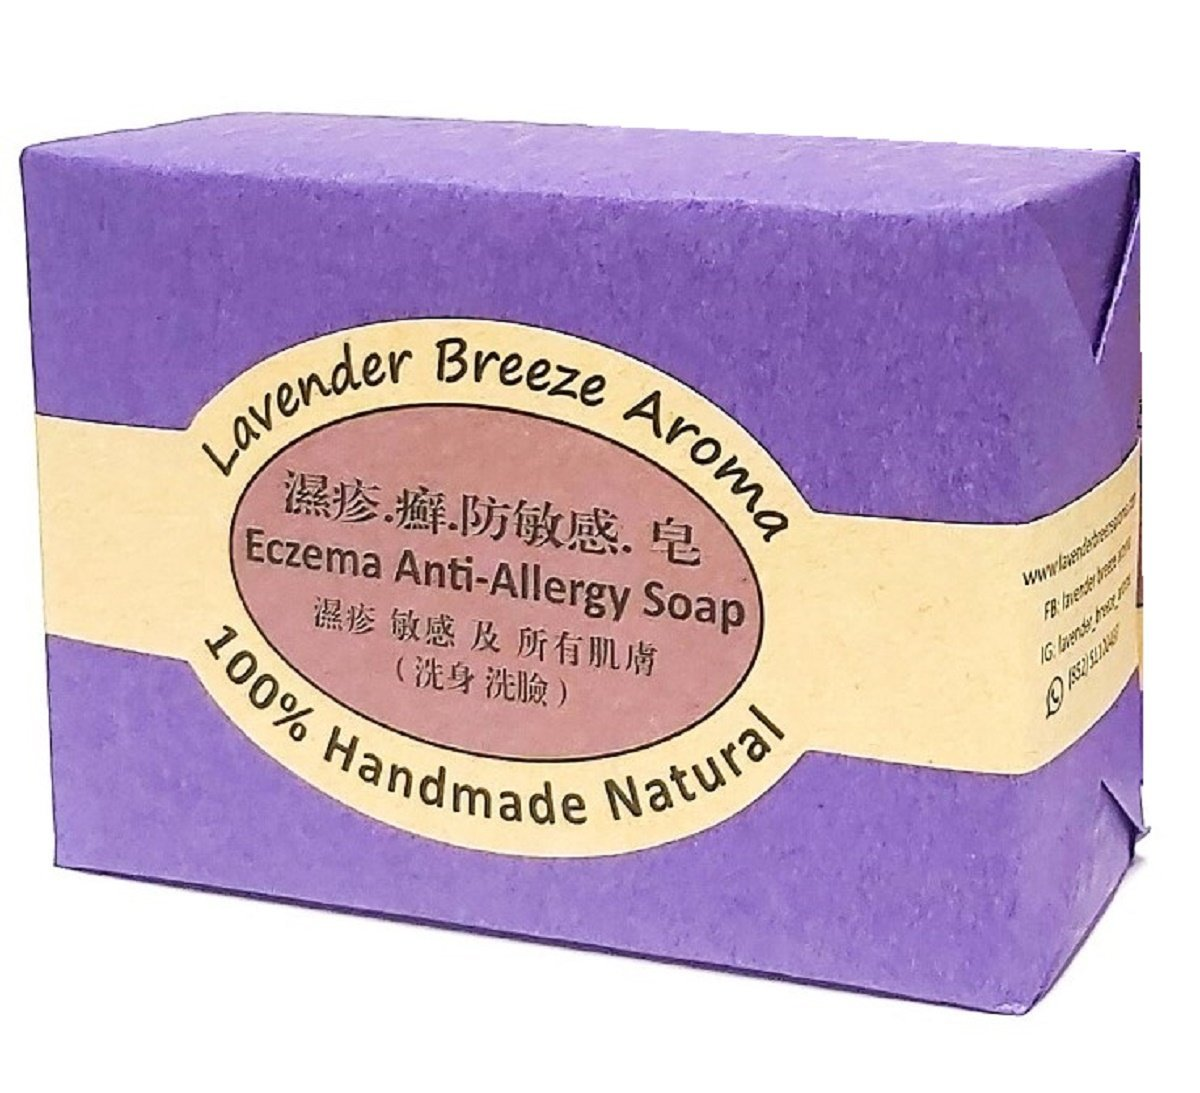 Eczema Anti-Allergy Soap (Face and Body) 1014